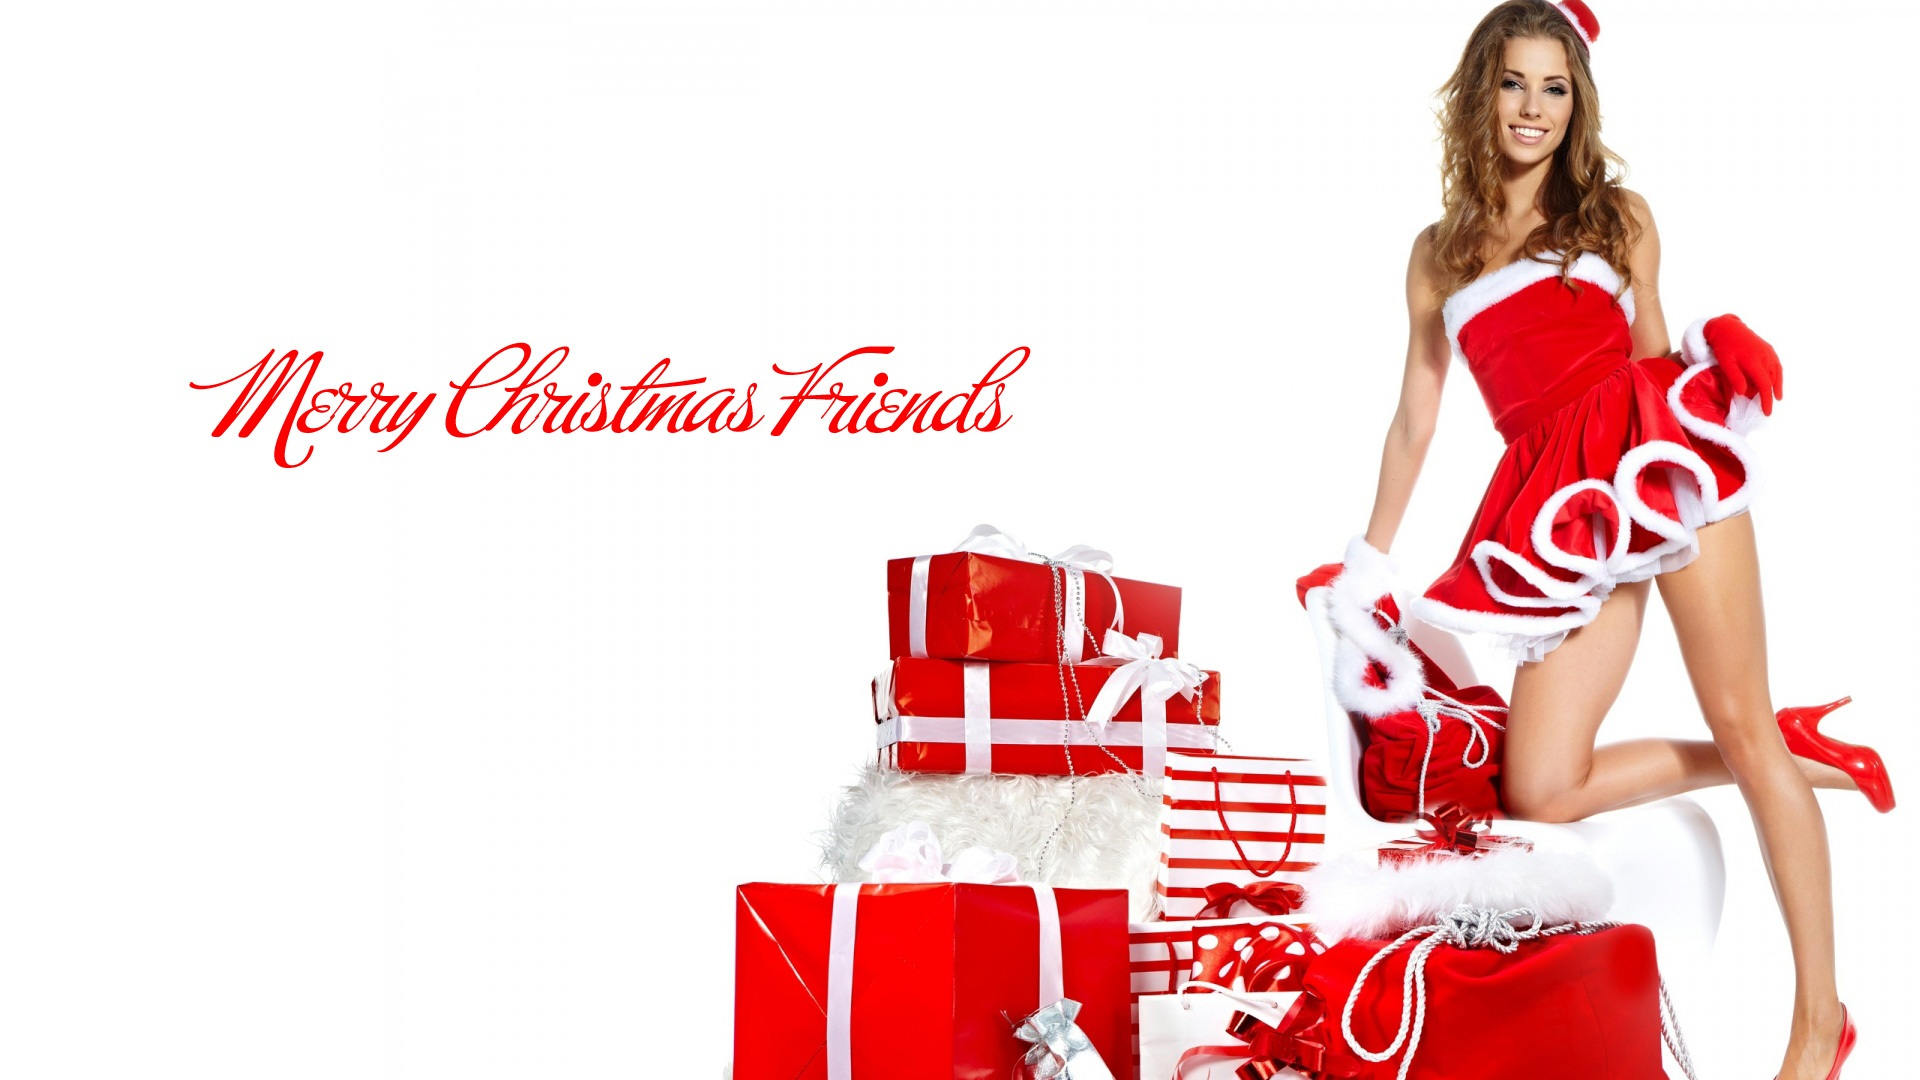 merry christmas girls wallpapers movie hd wallpapers